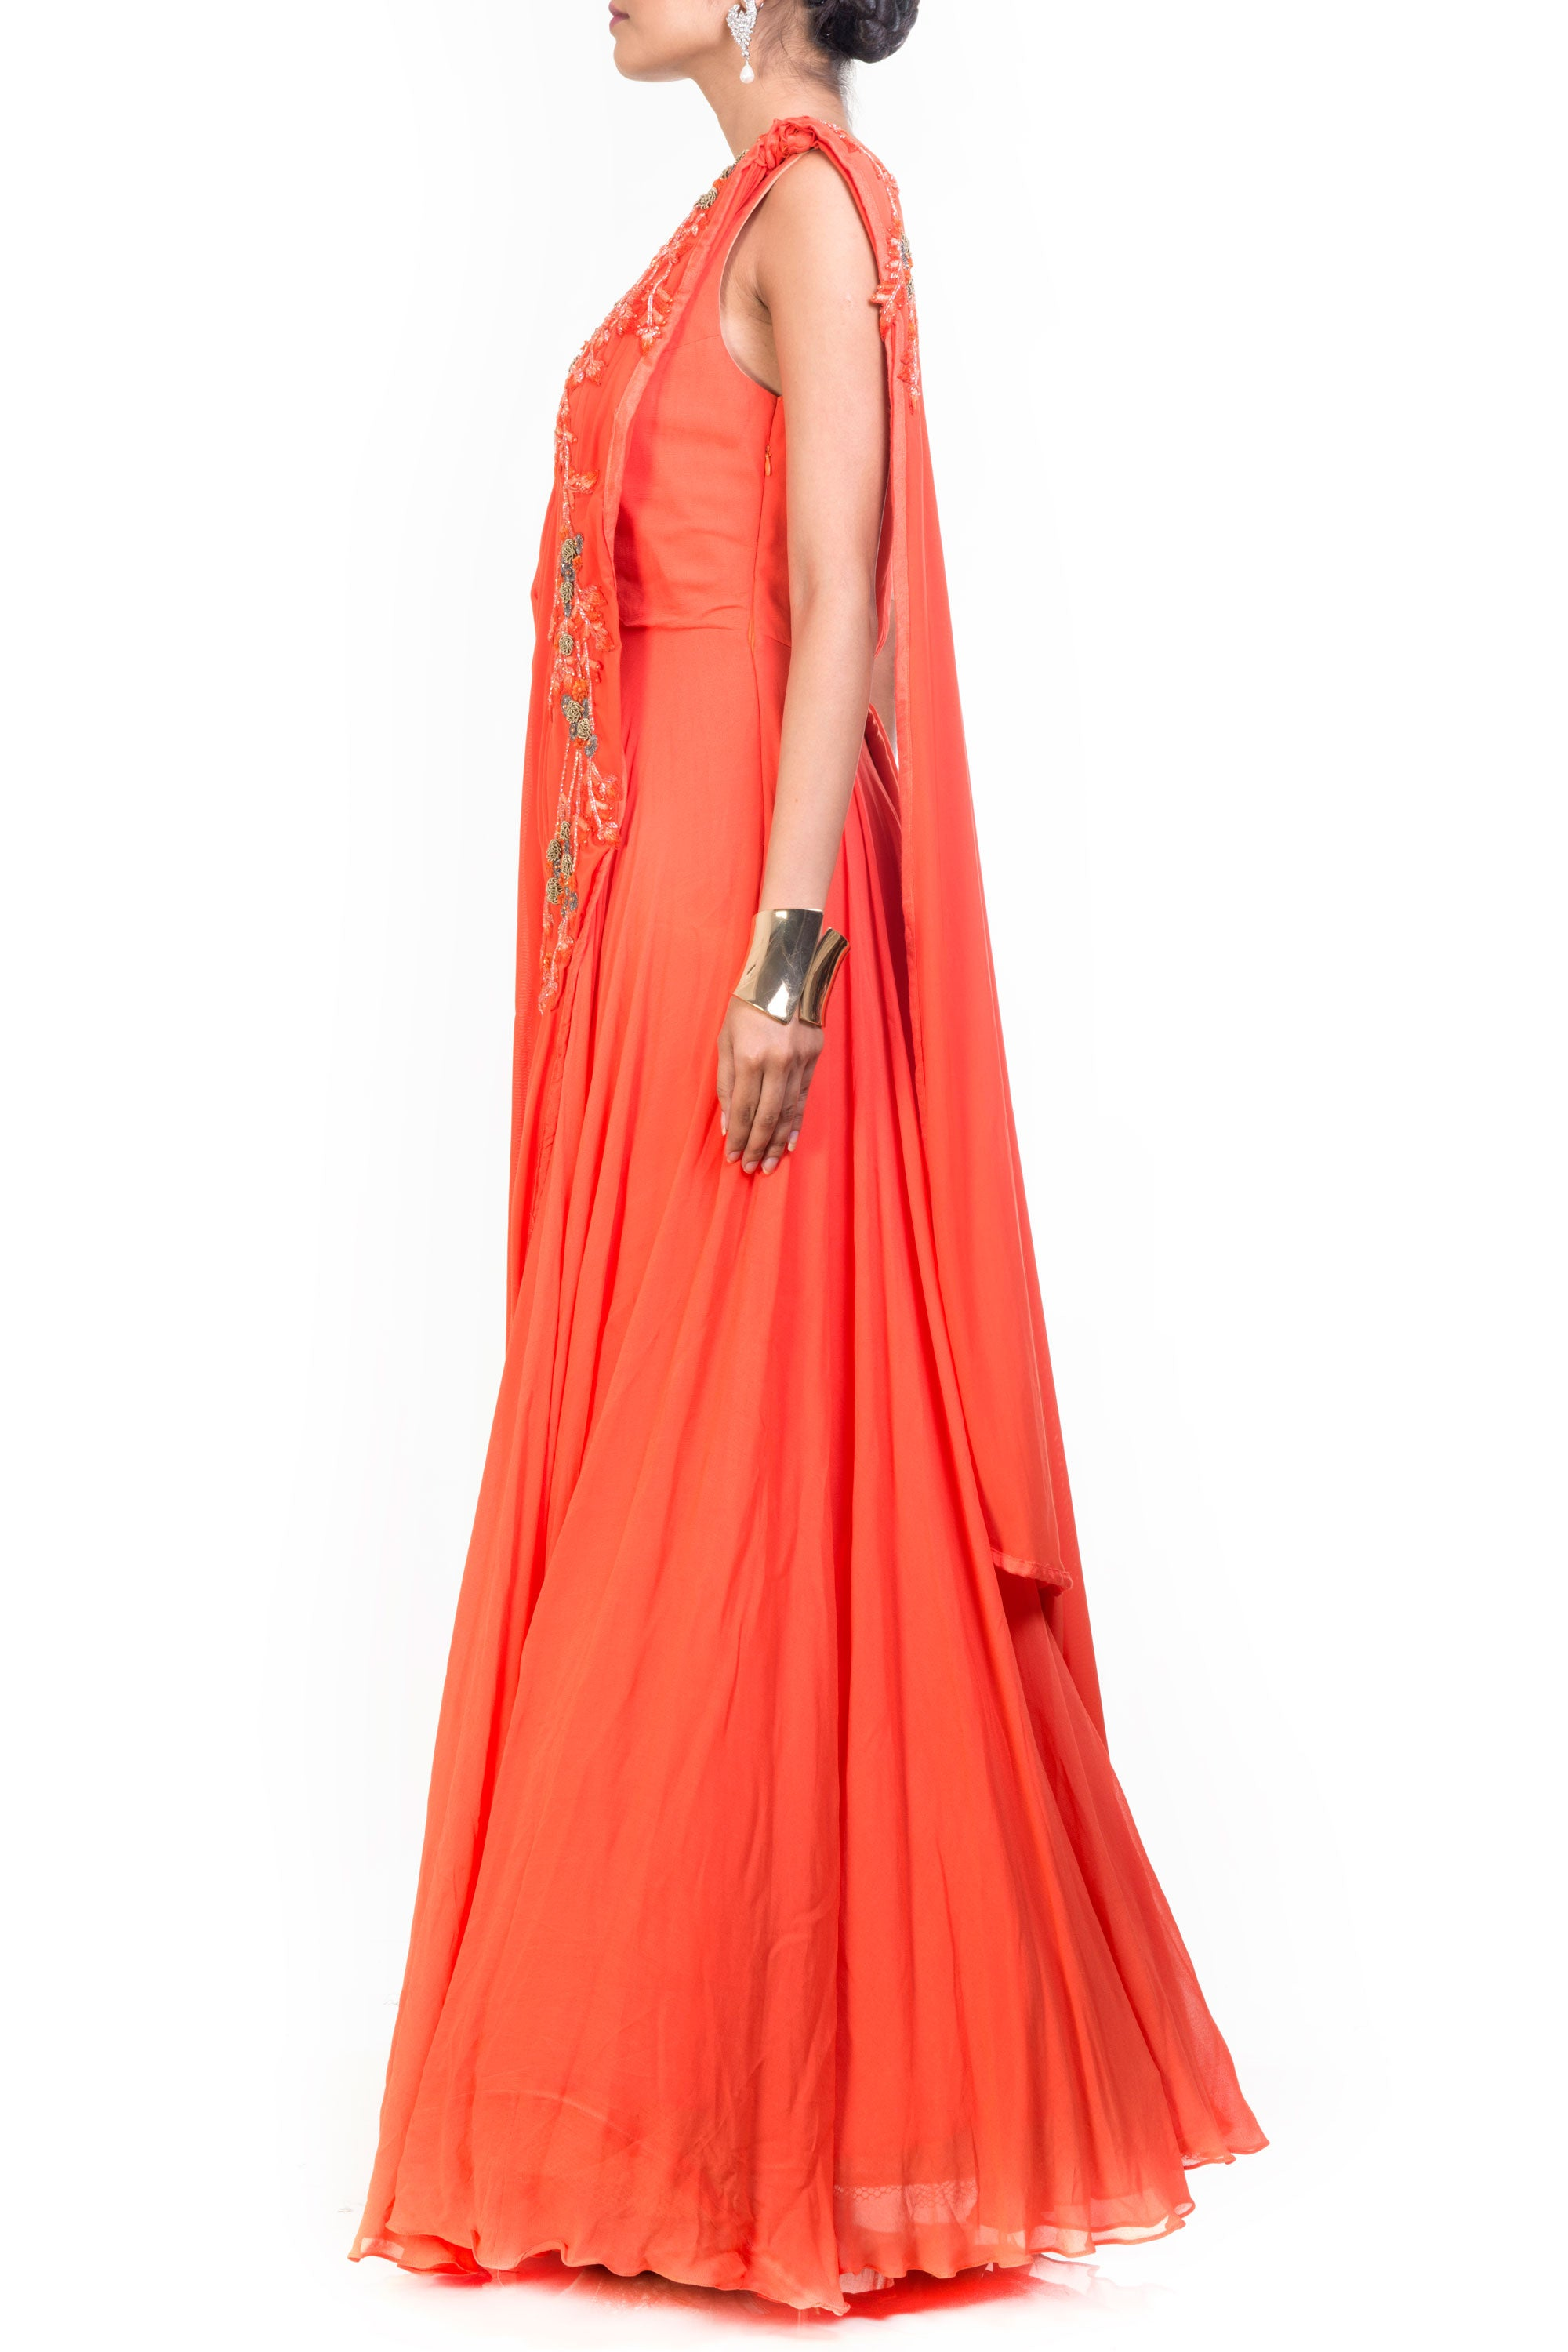 Tangerine Saree Drape Gown Side